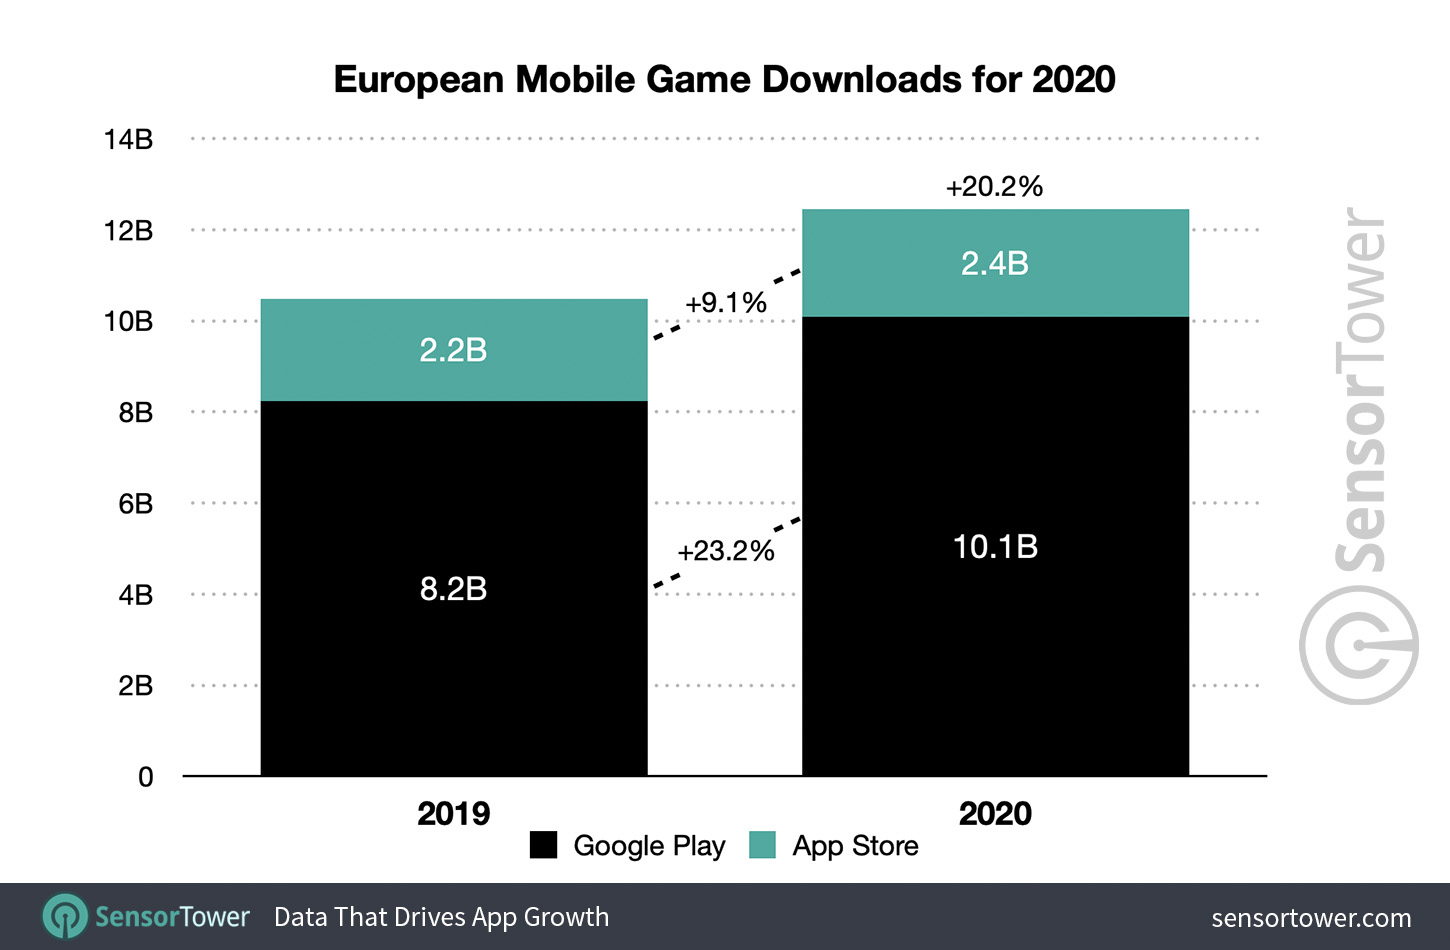 European Mobile Games Downloads for 2020